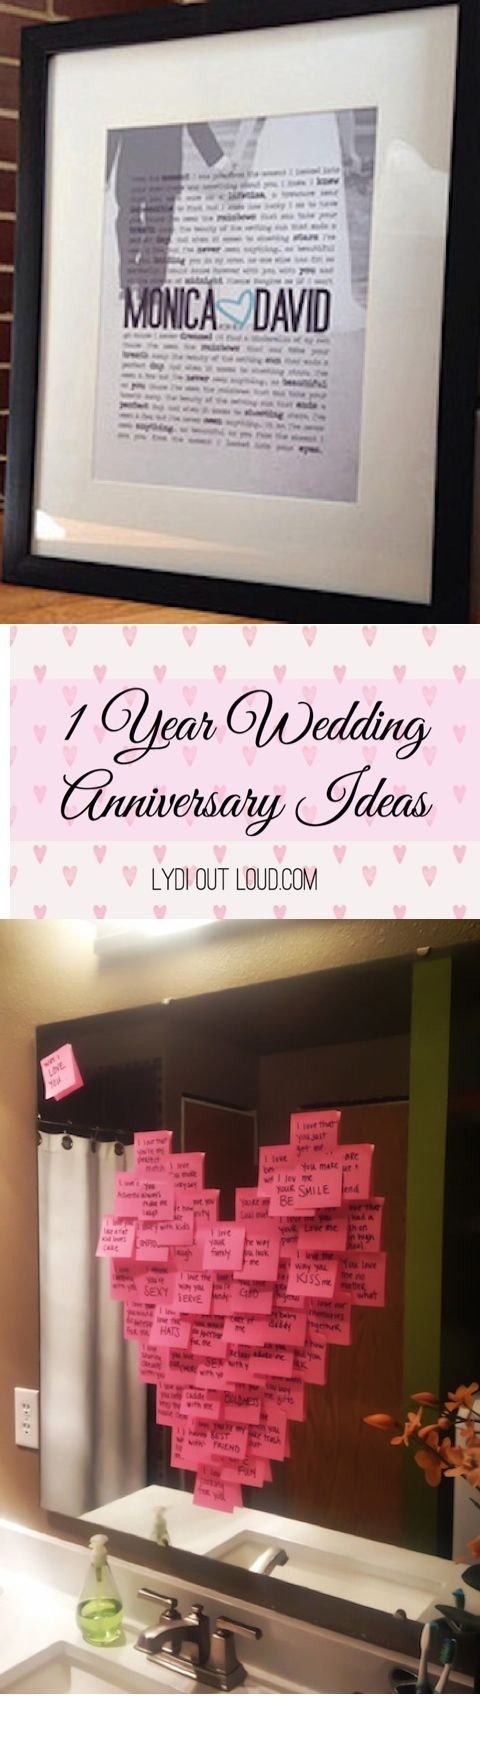 1 year anniversary gift ideas | paper gifts, wedding anniversary and